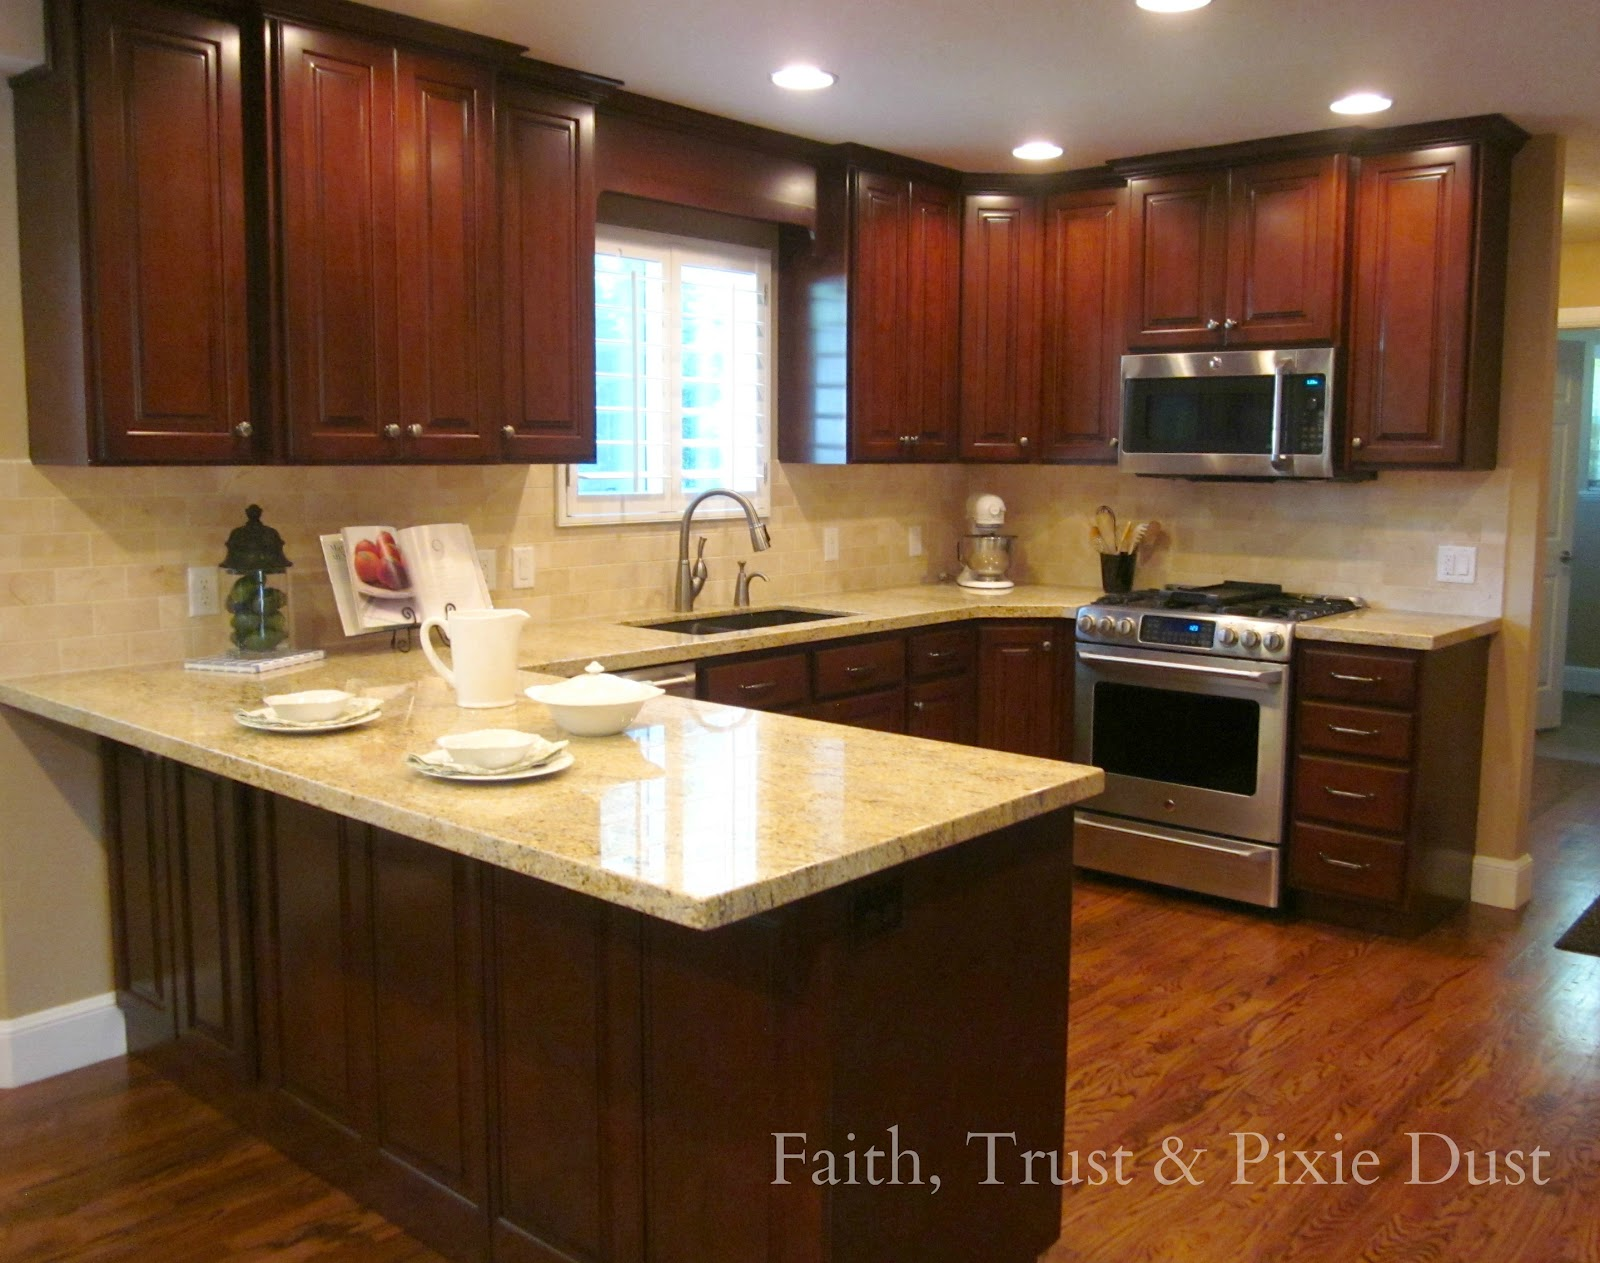 Honey i 39 m home a spectacular kitchen remodel for Kitchen and remodeling